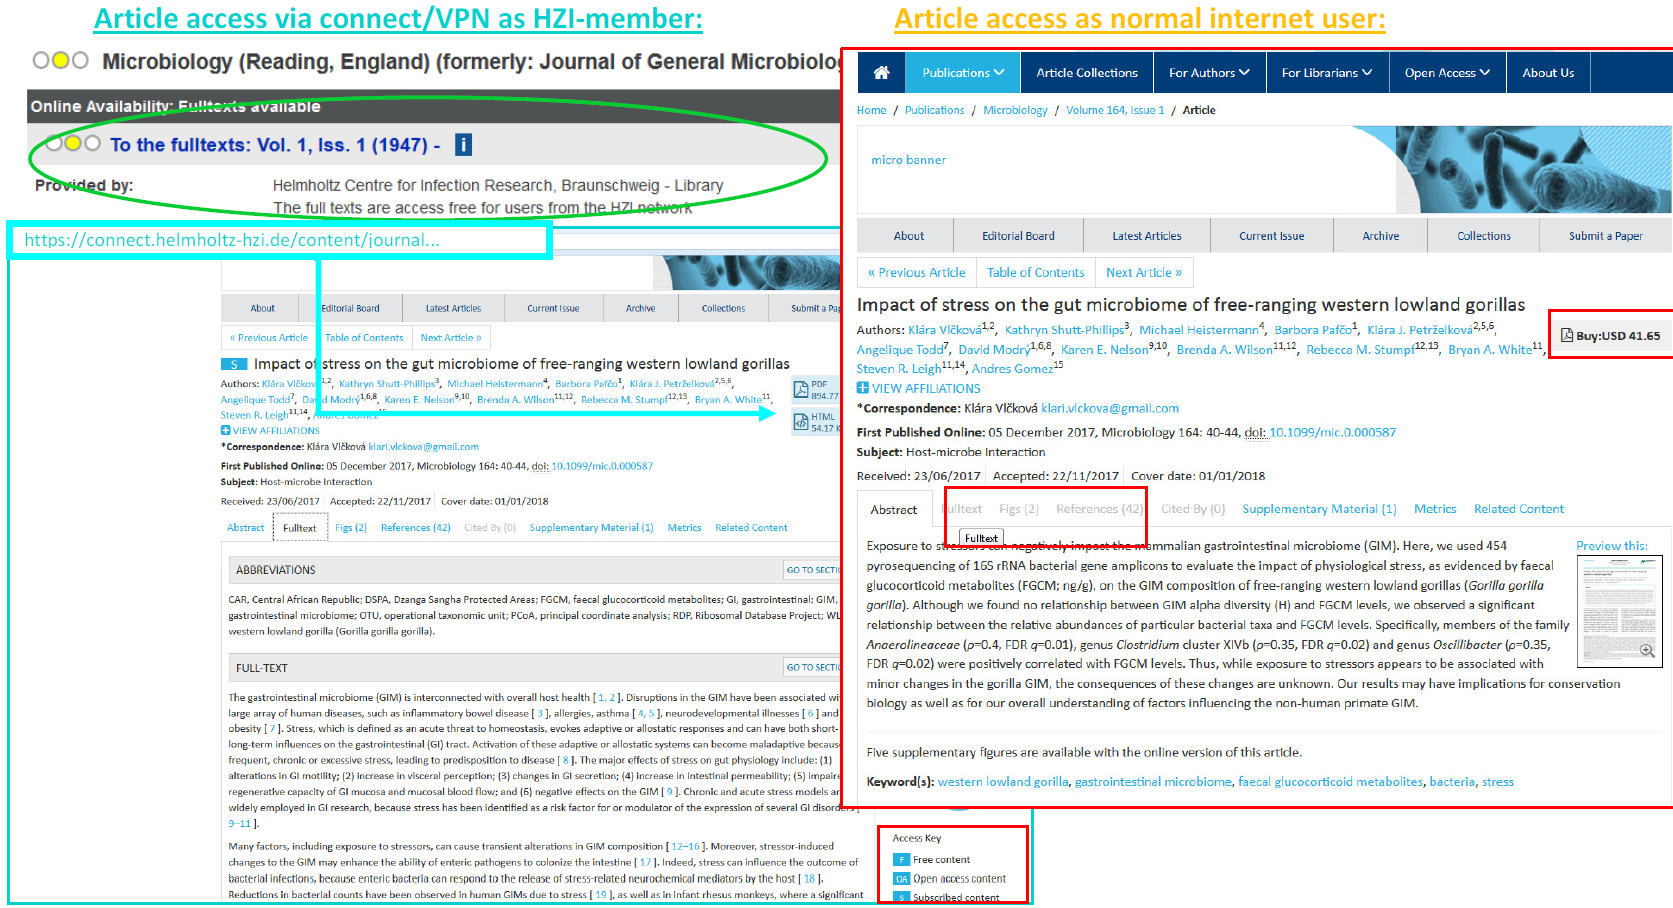 News article access via connect as hzi member vs as normal internet user fandeluxe Image collections